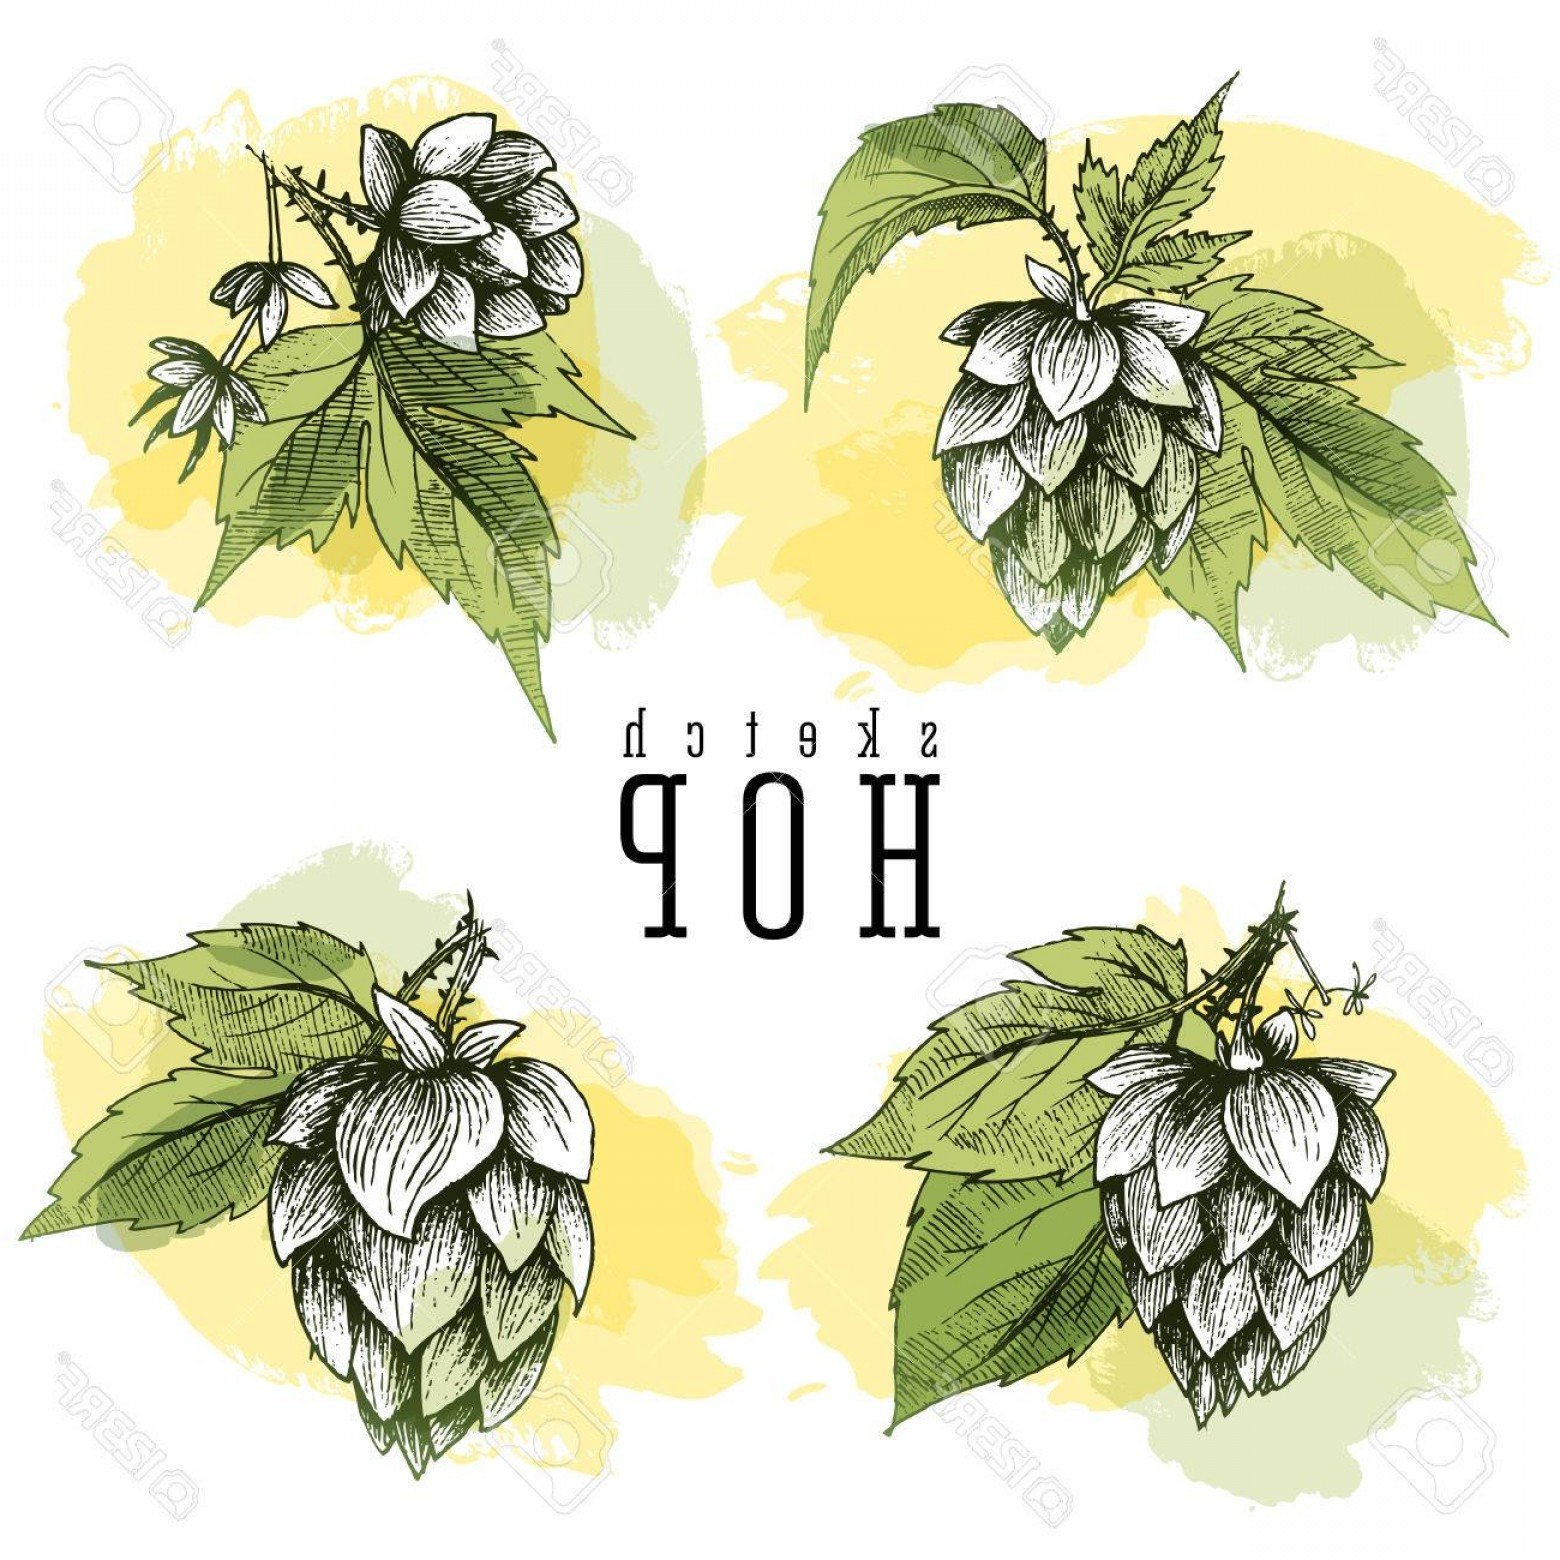 Beer Hops Vector: Photostock Vector Beer Hops Set Of Hand Drawn Hops Branches With Leaves Cones And Hops Flowers Color Sketch And Engr